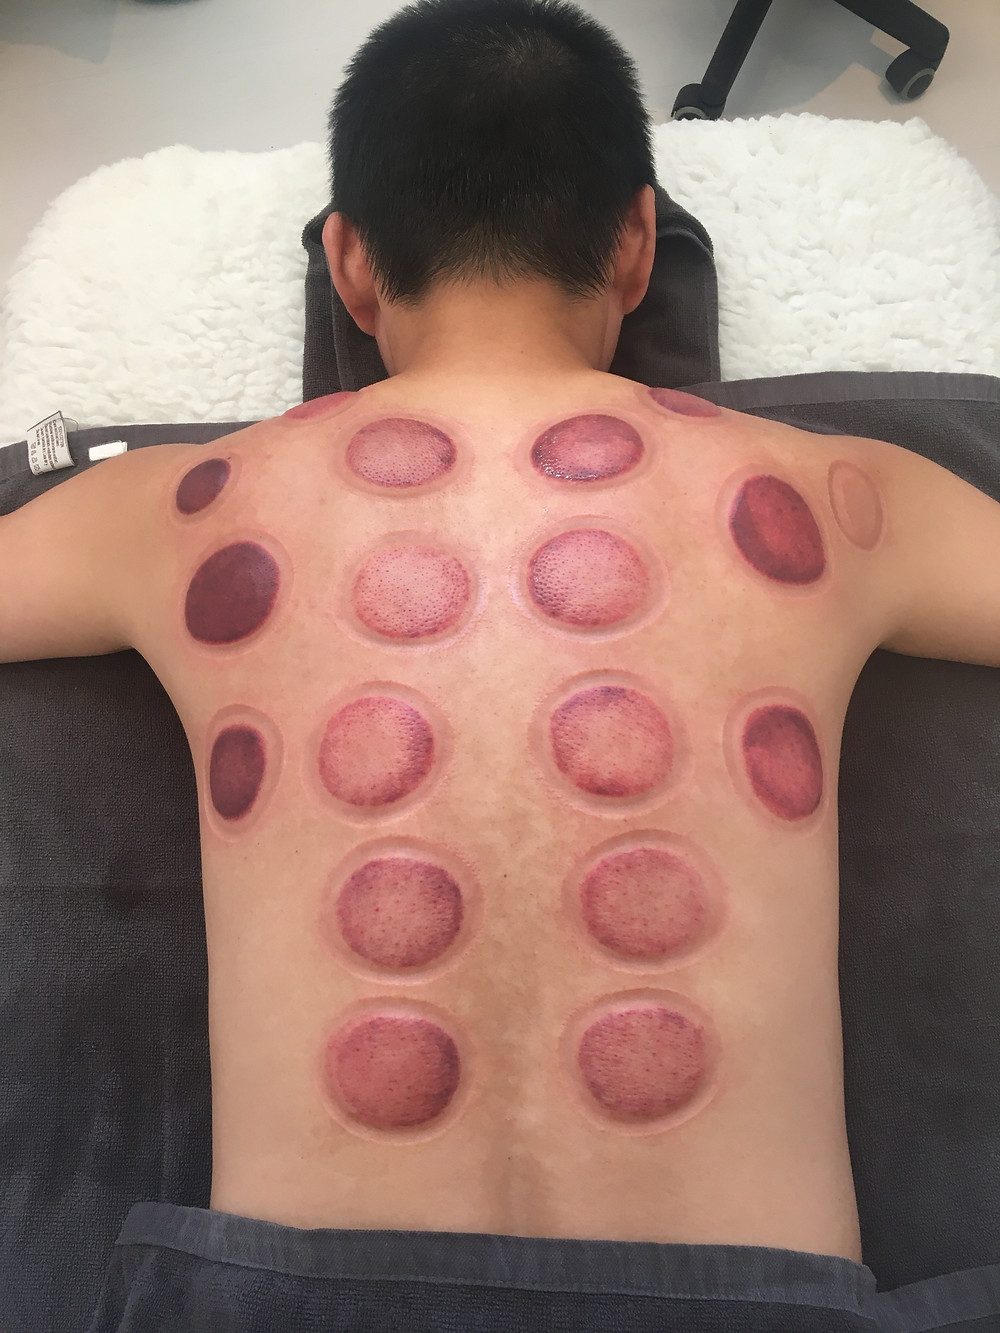 Marks from cupping therapy